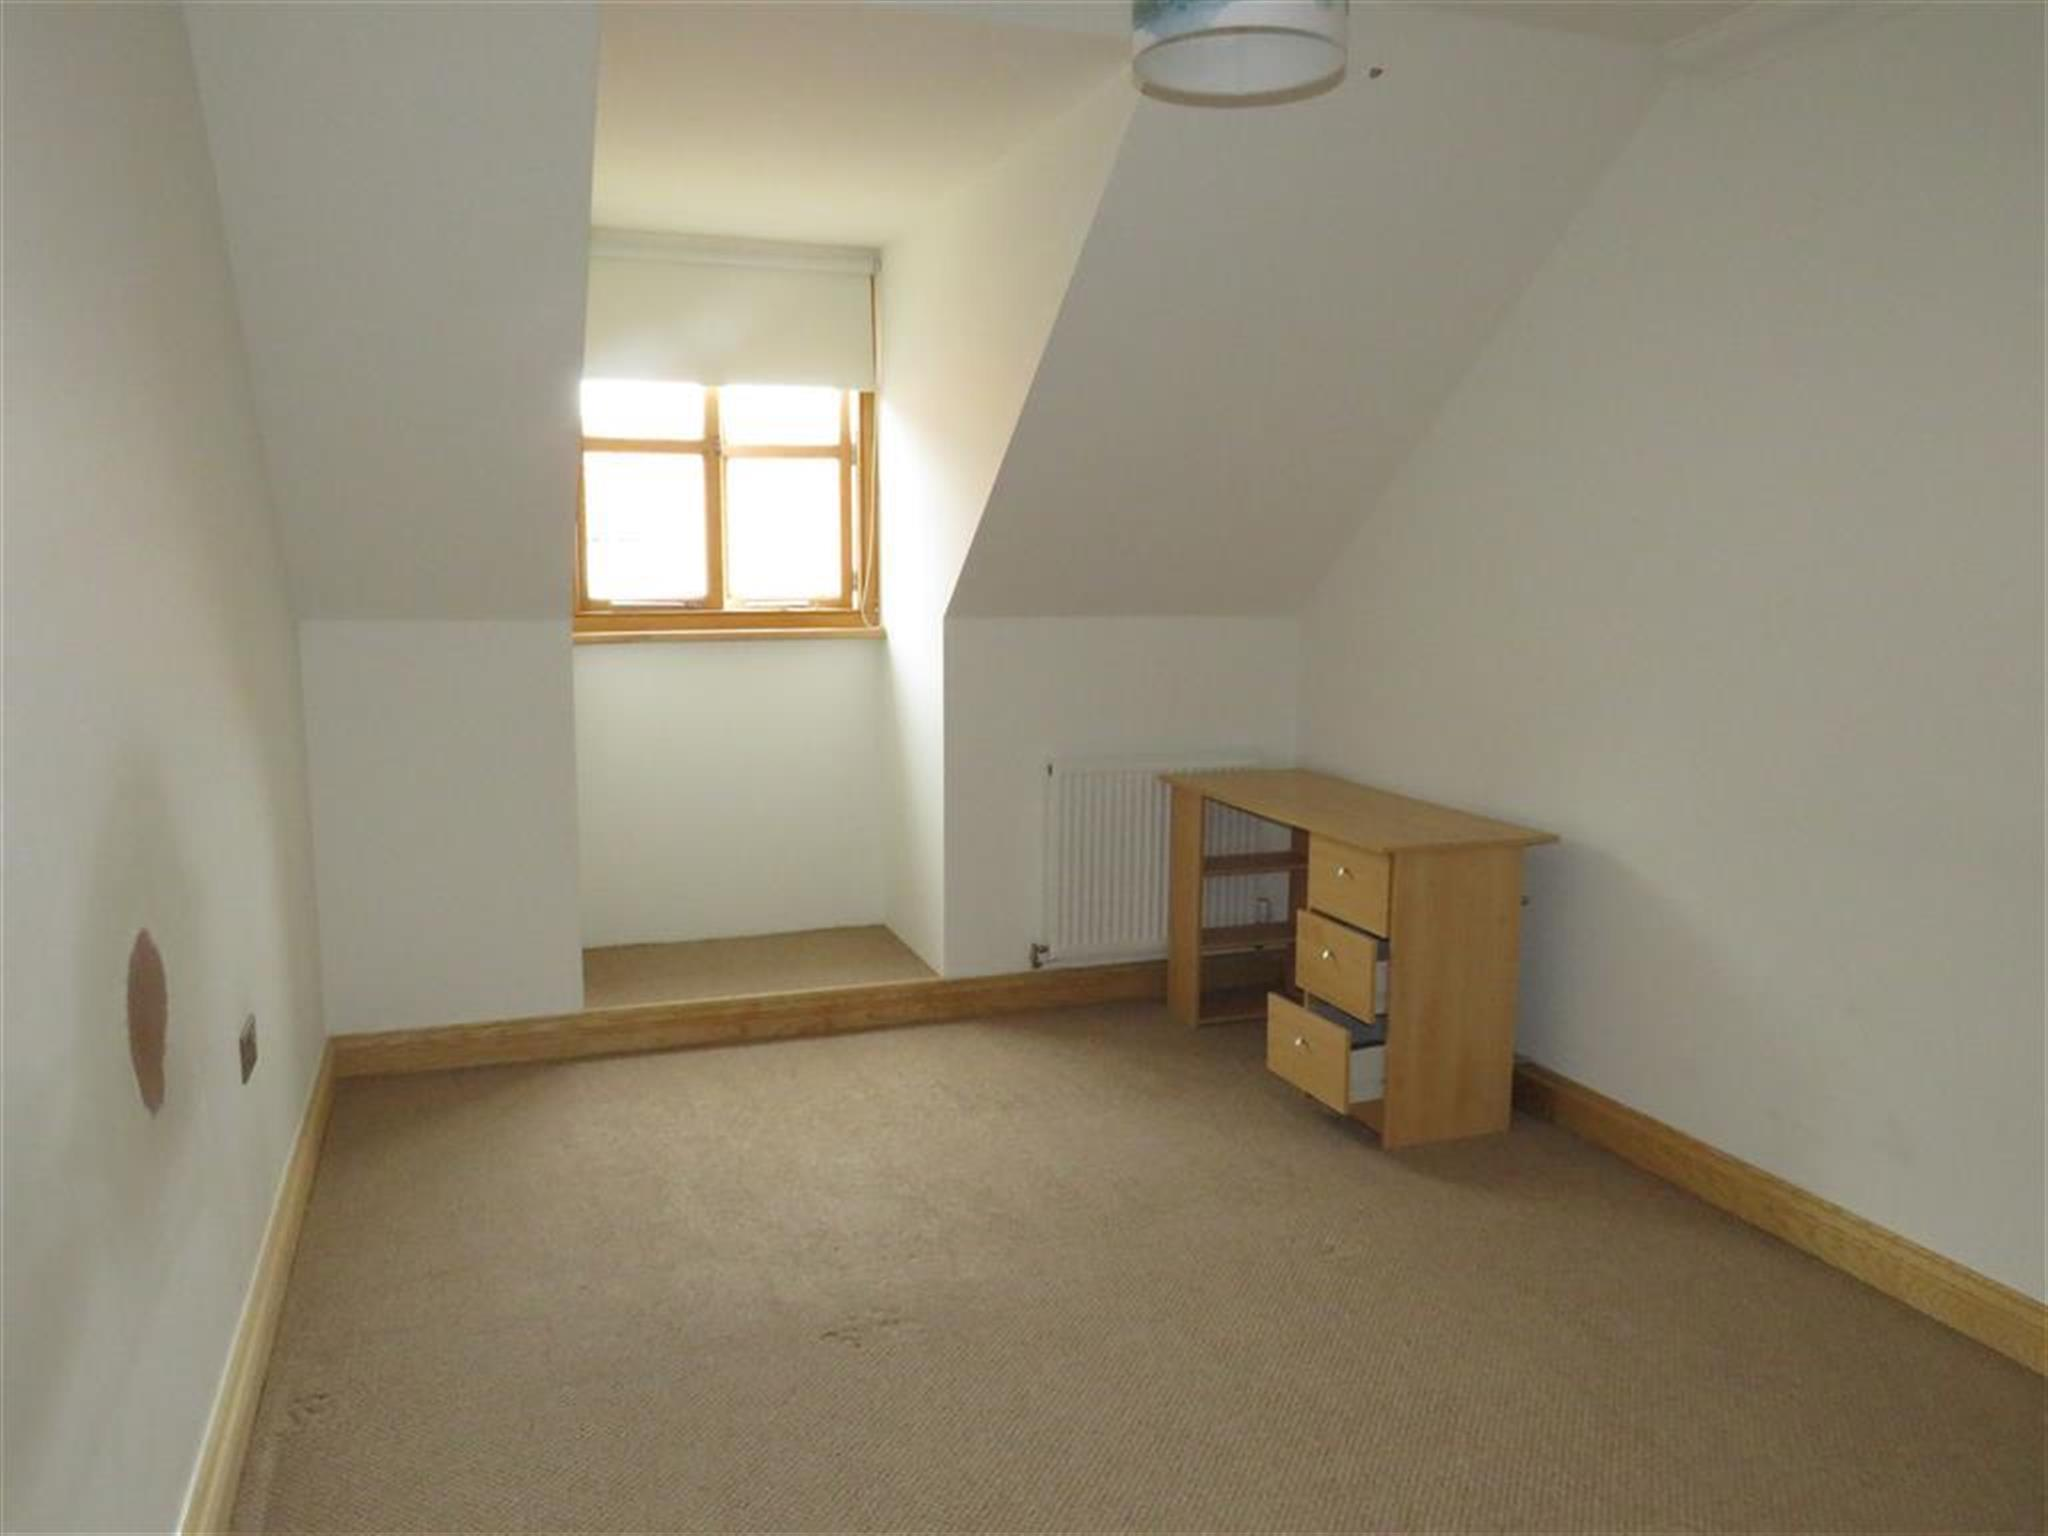 2 Bedroom Apartment To Rent Hamilton House The Street Great Saling Braintree Cm7 5fs